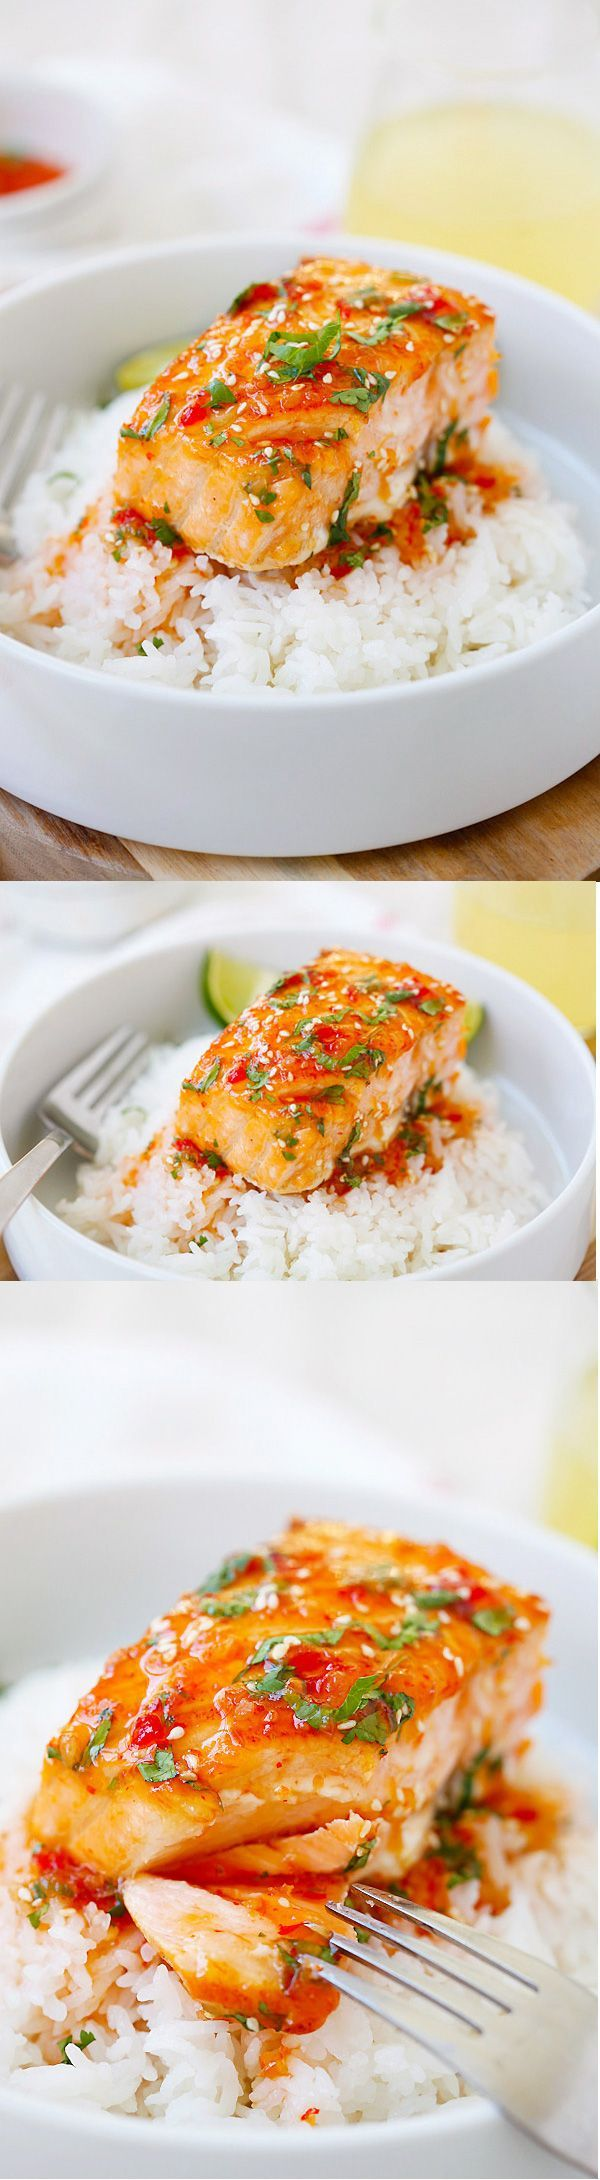 Sweet Chili Salmon – quick and easy salmon with Thai sweet chili sauce. The recipe takes only 15 mins on skillet or you can bake it